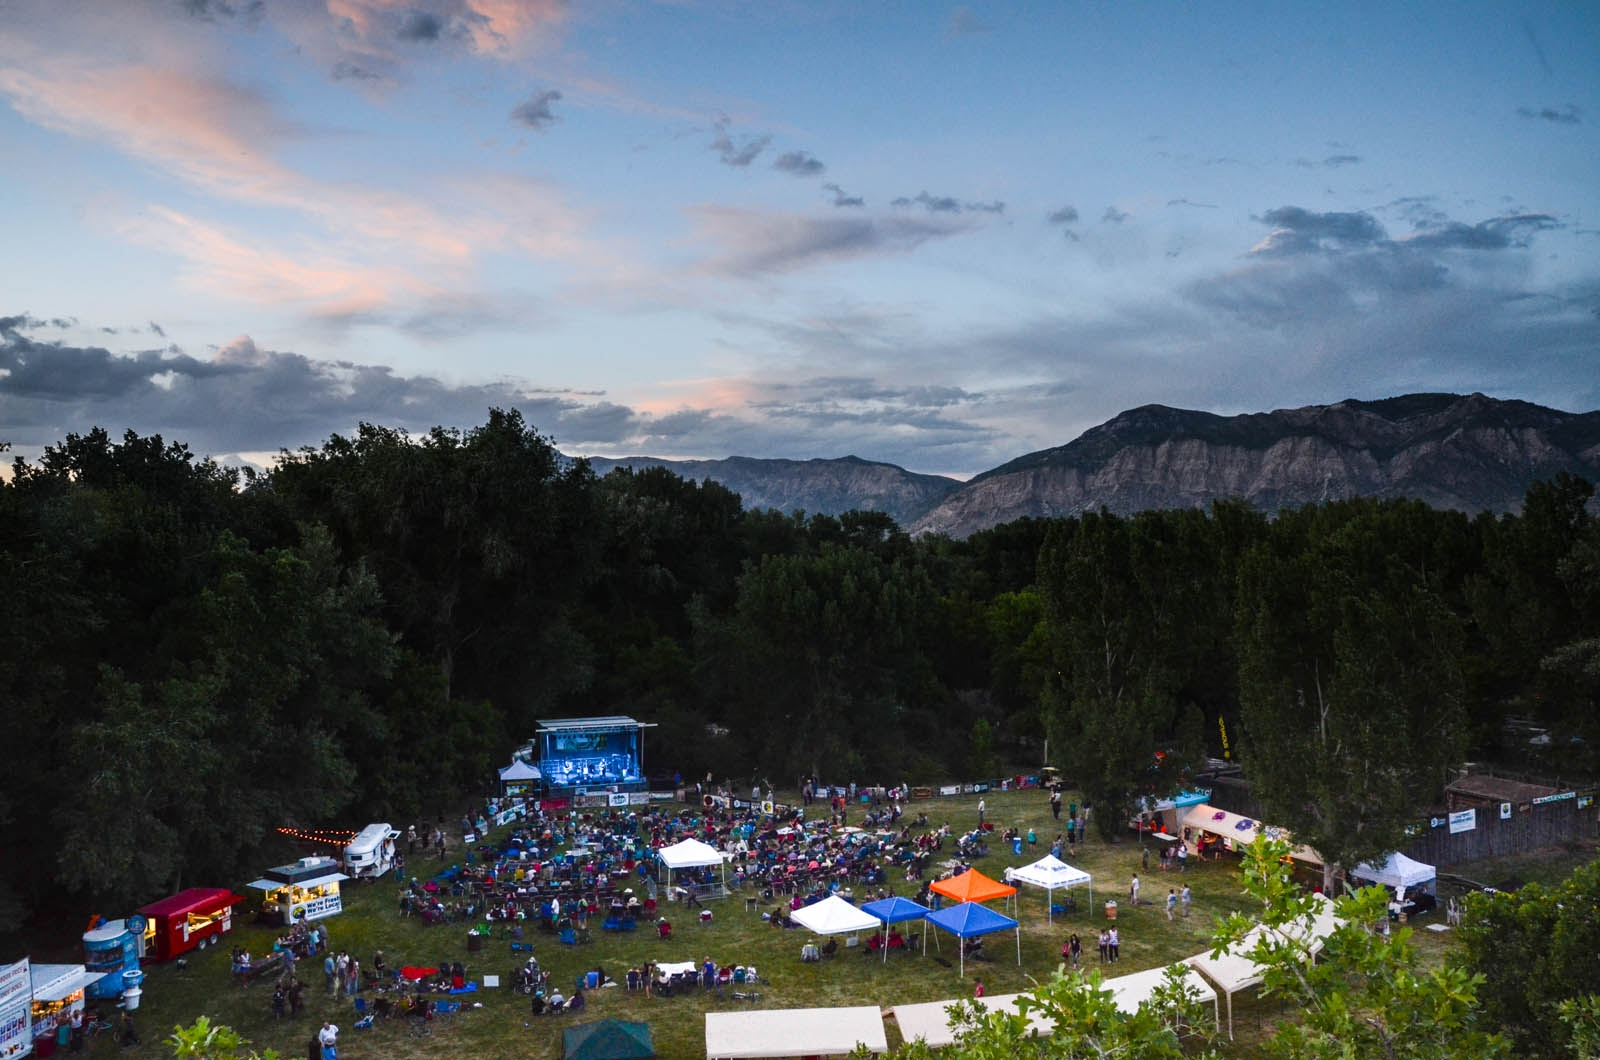 Ogden Music Festival - May 29th - May 31st